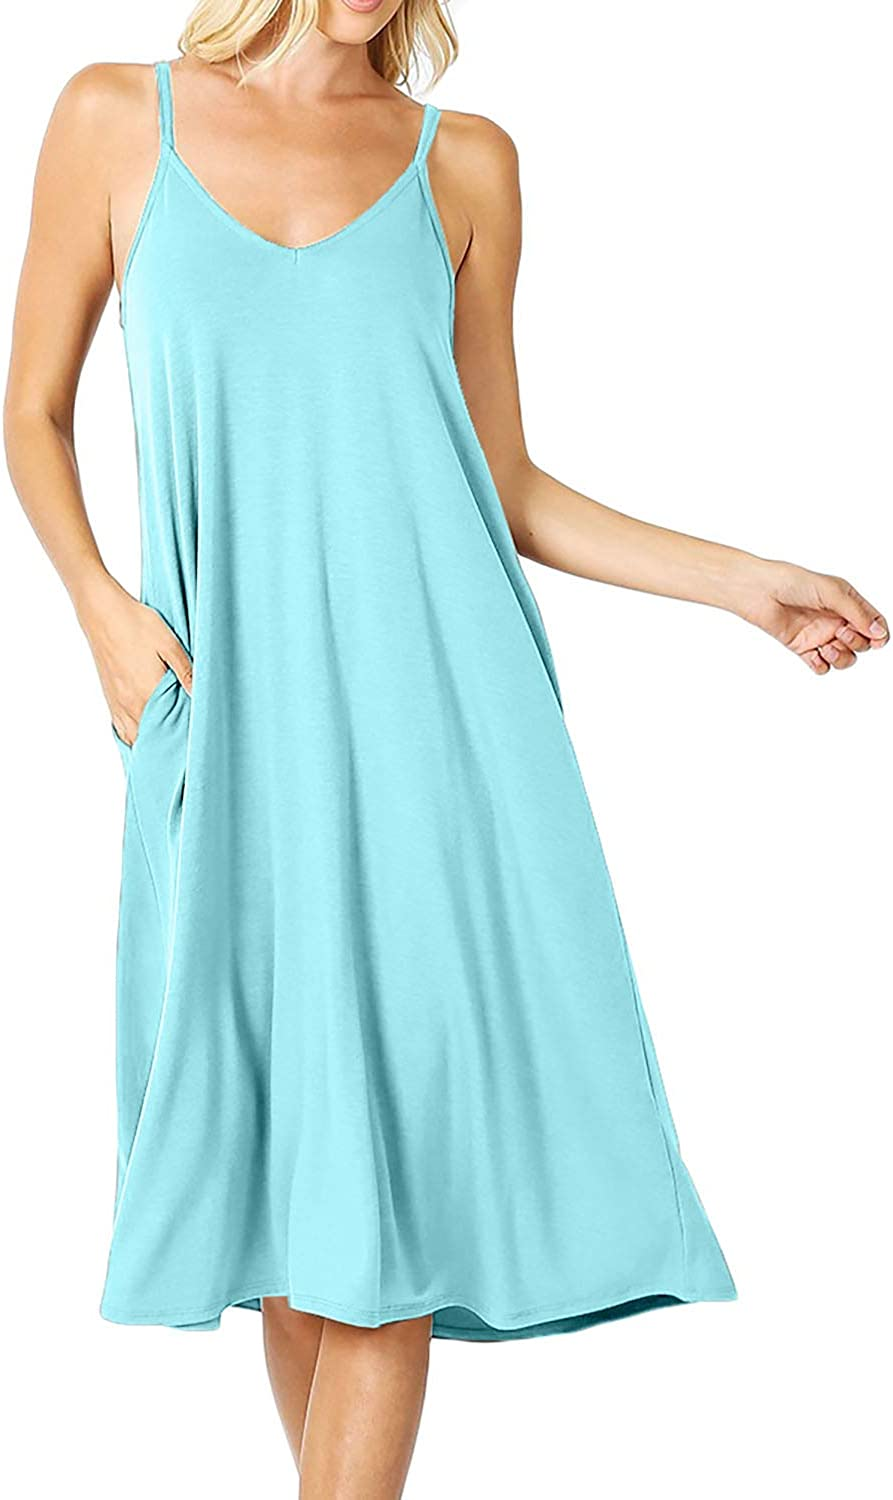 Dress for Women's Same day shipping Premium V-Neck Cami Length Brand new with Side Knee Pock